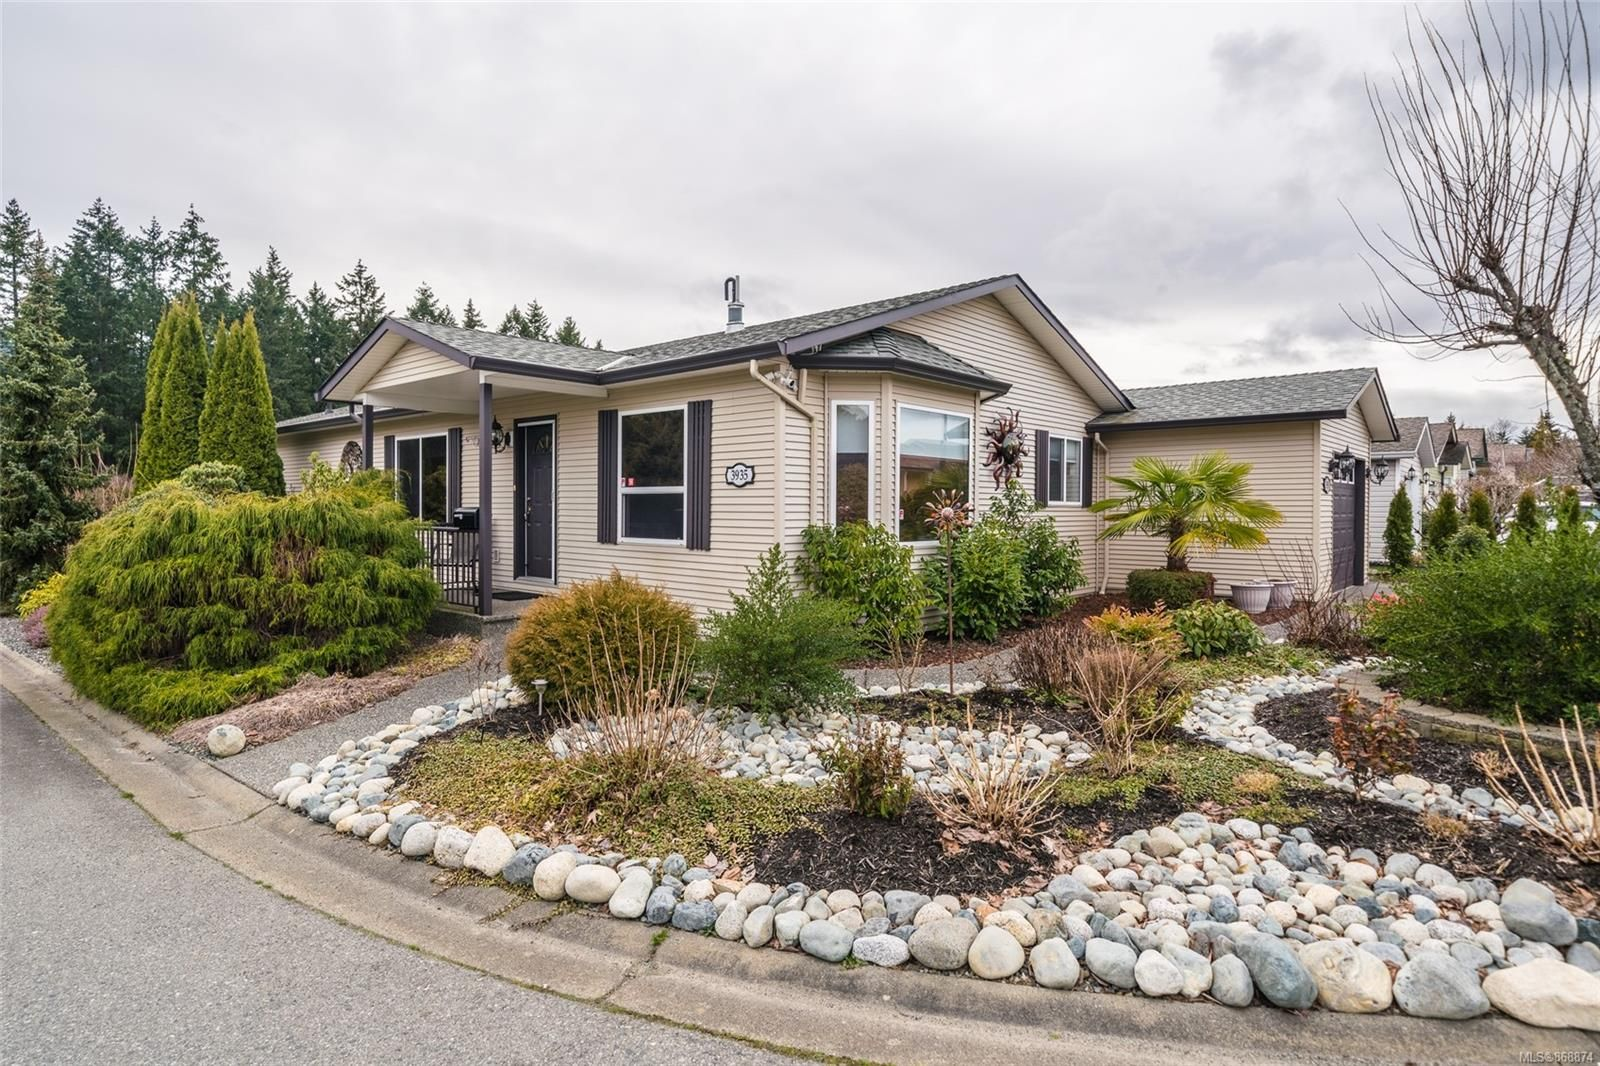 Main Photo: 3935 Excalibur St in : Na North Jingle Pot Manufactured Home for sale (Nanaimo)  : MLS®# 868874